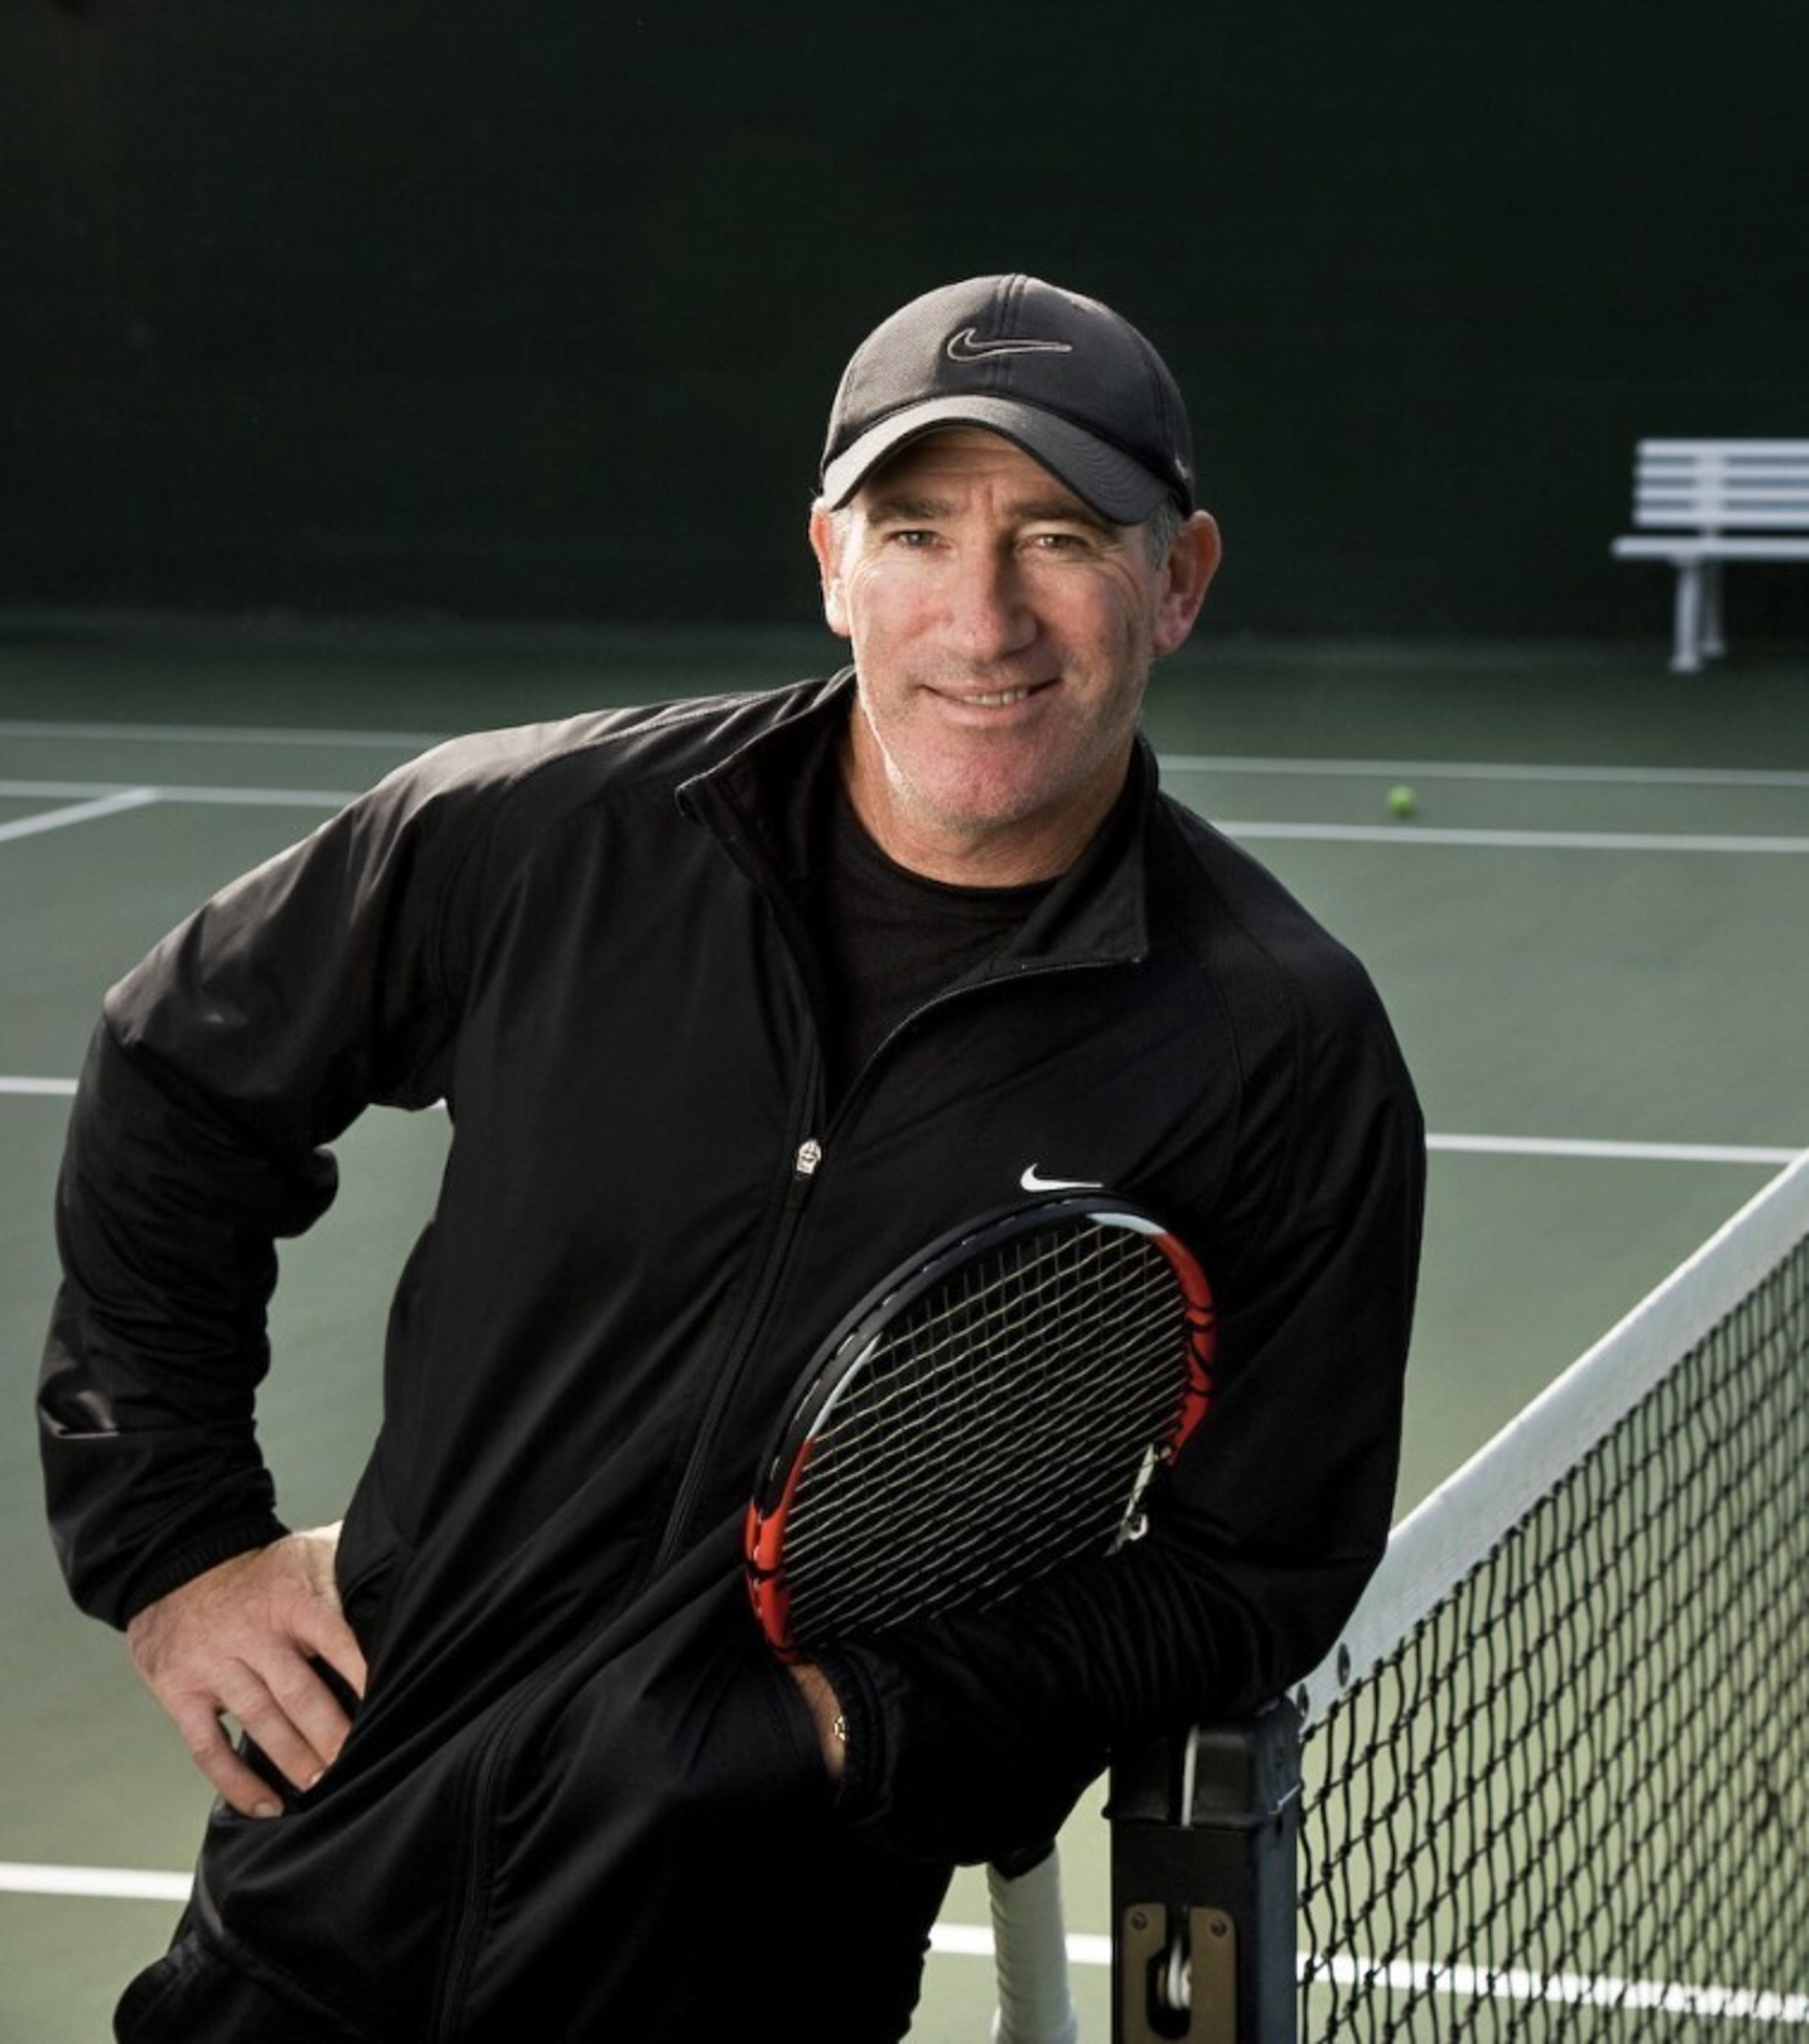 Private tennis lesson with former pro and Olympic medalist Brad Gilbert, who has also coached such tennis stars as Andre Agassi, Andy Roddick and Andy Murray, in addition to serving as an ESPN host.